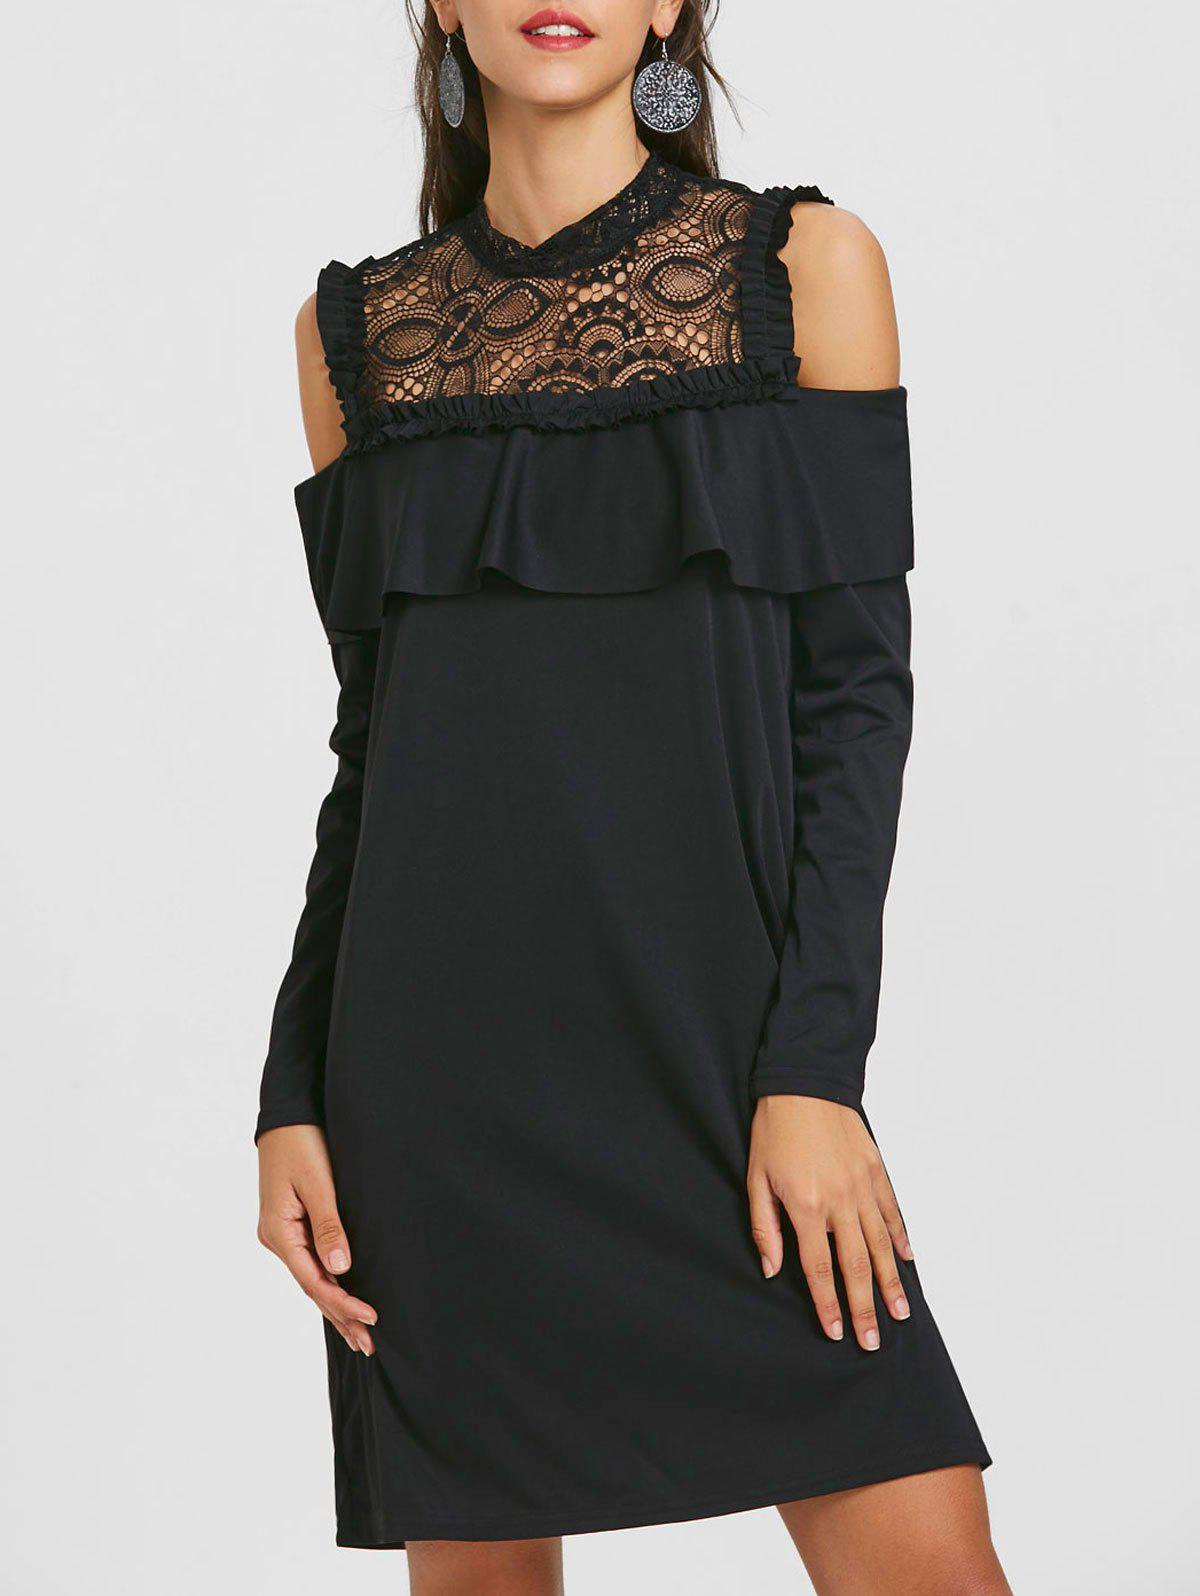 Lace Trim Open Shoulder Ruffle Dress - BLACK XL